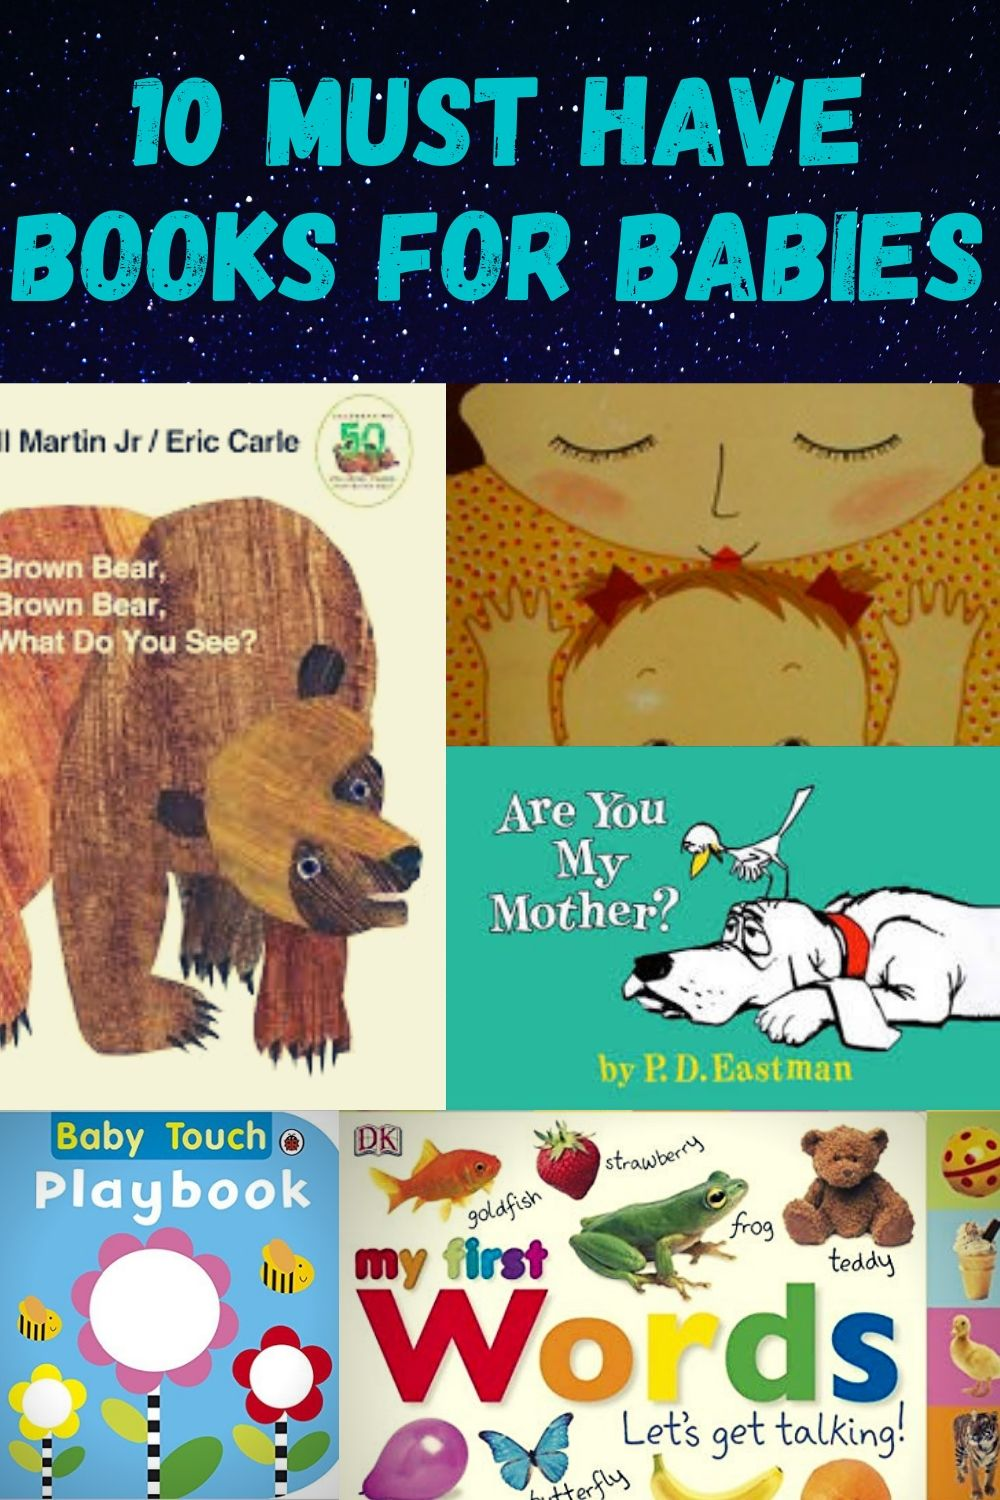 Ten Must Have books for Babies to start the reading journey